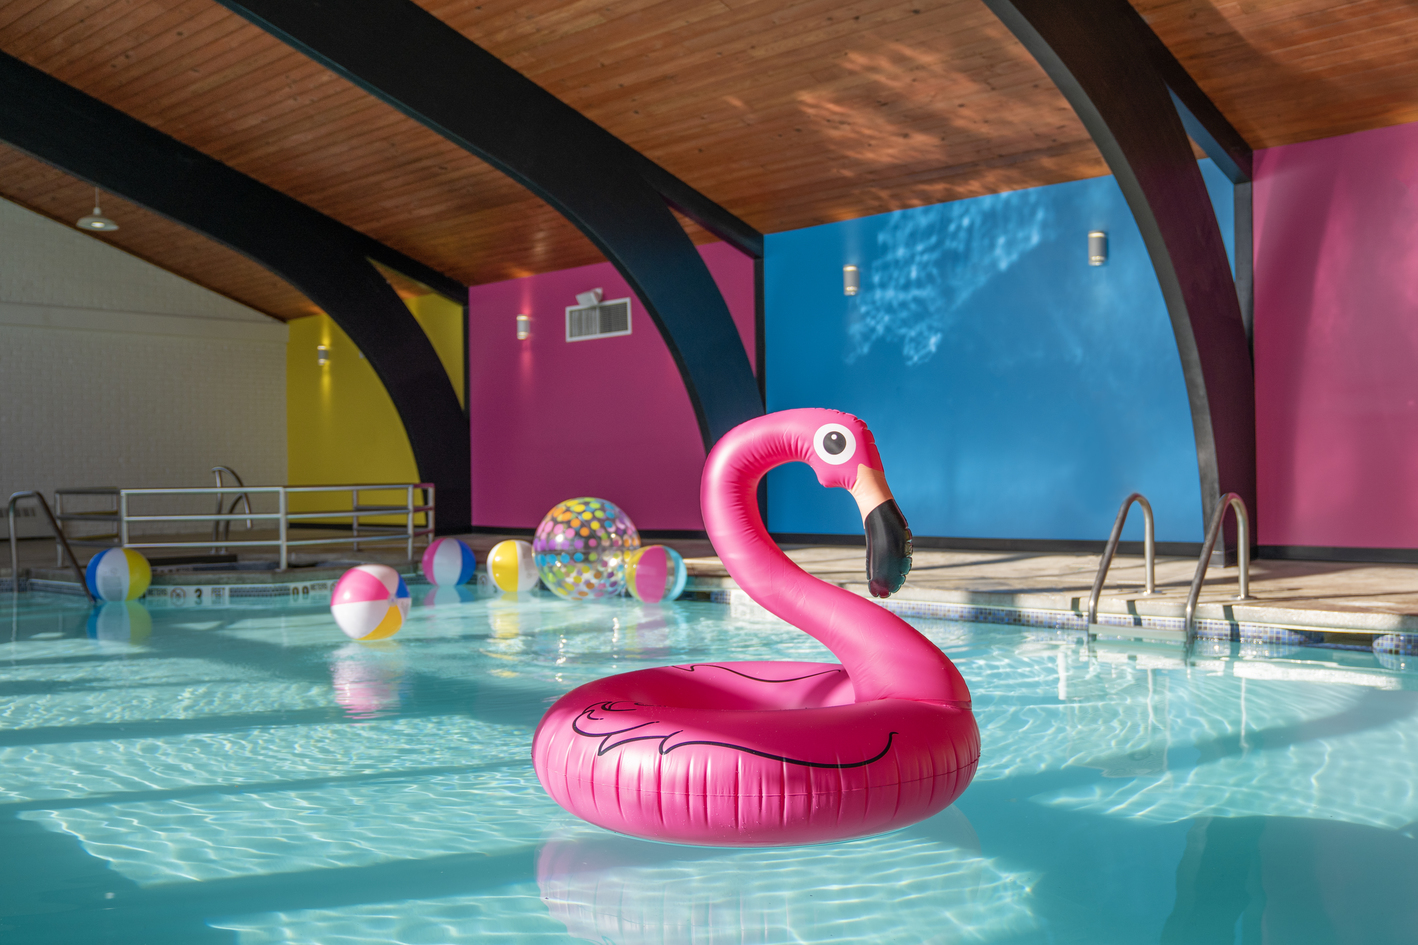 Inflatable pink flamingo floats in an indoor pool